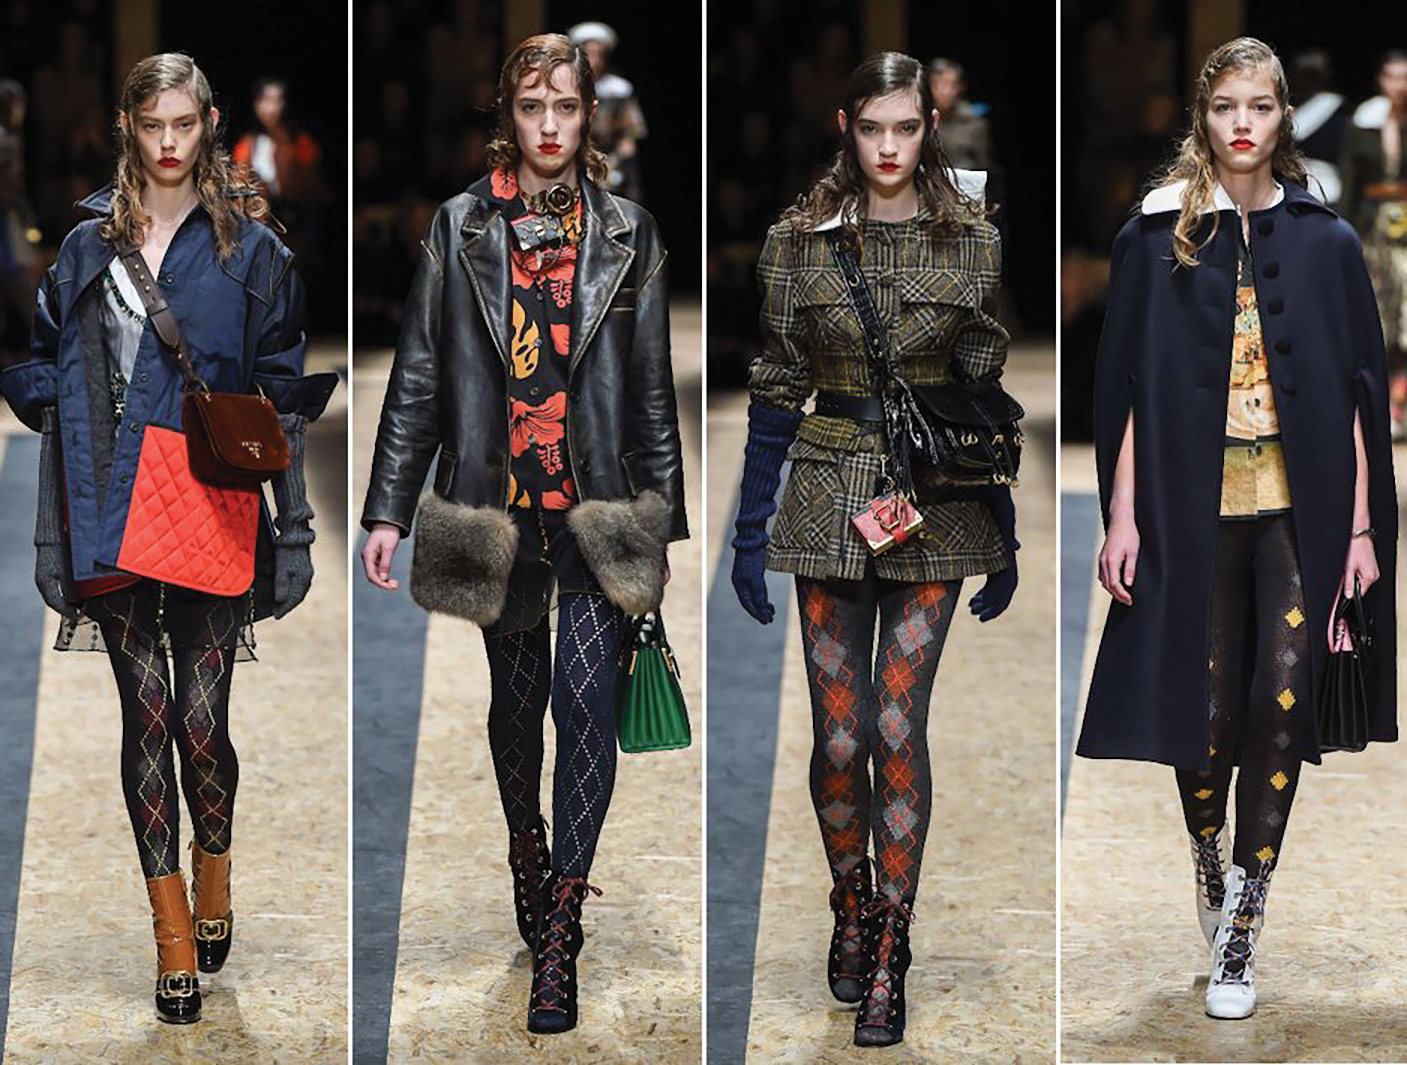 Prada collection with patterned tights, AW/16